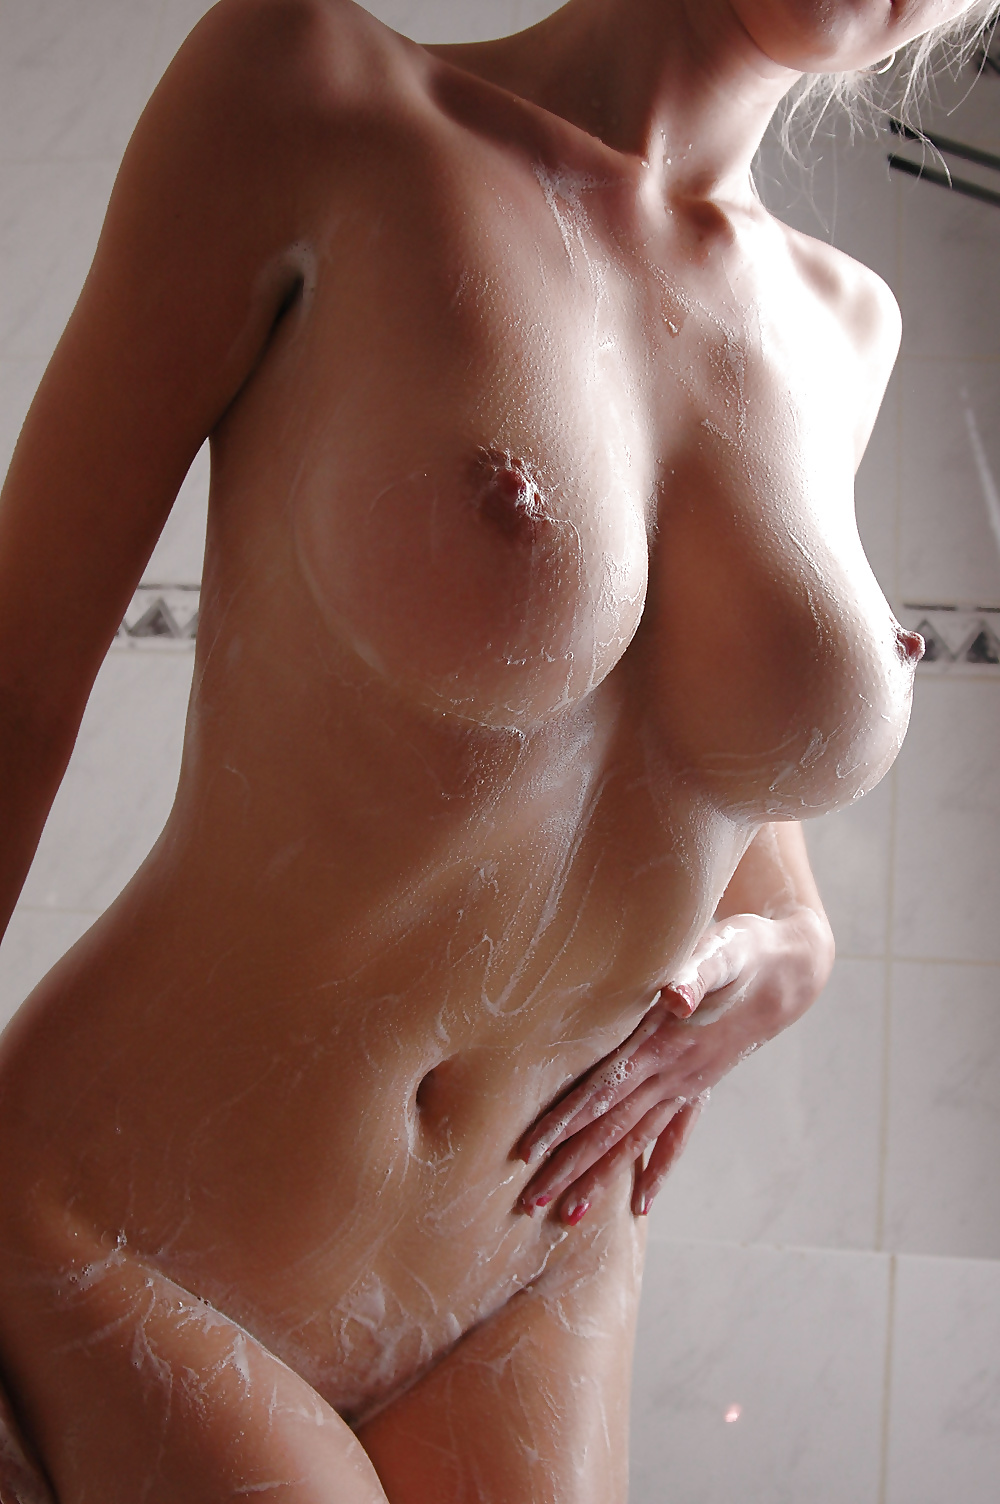 nude-body-shower-hot-ass-milf-free-vids